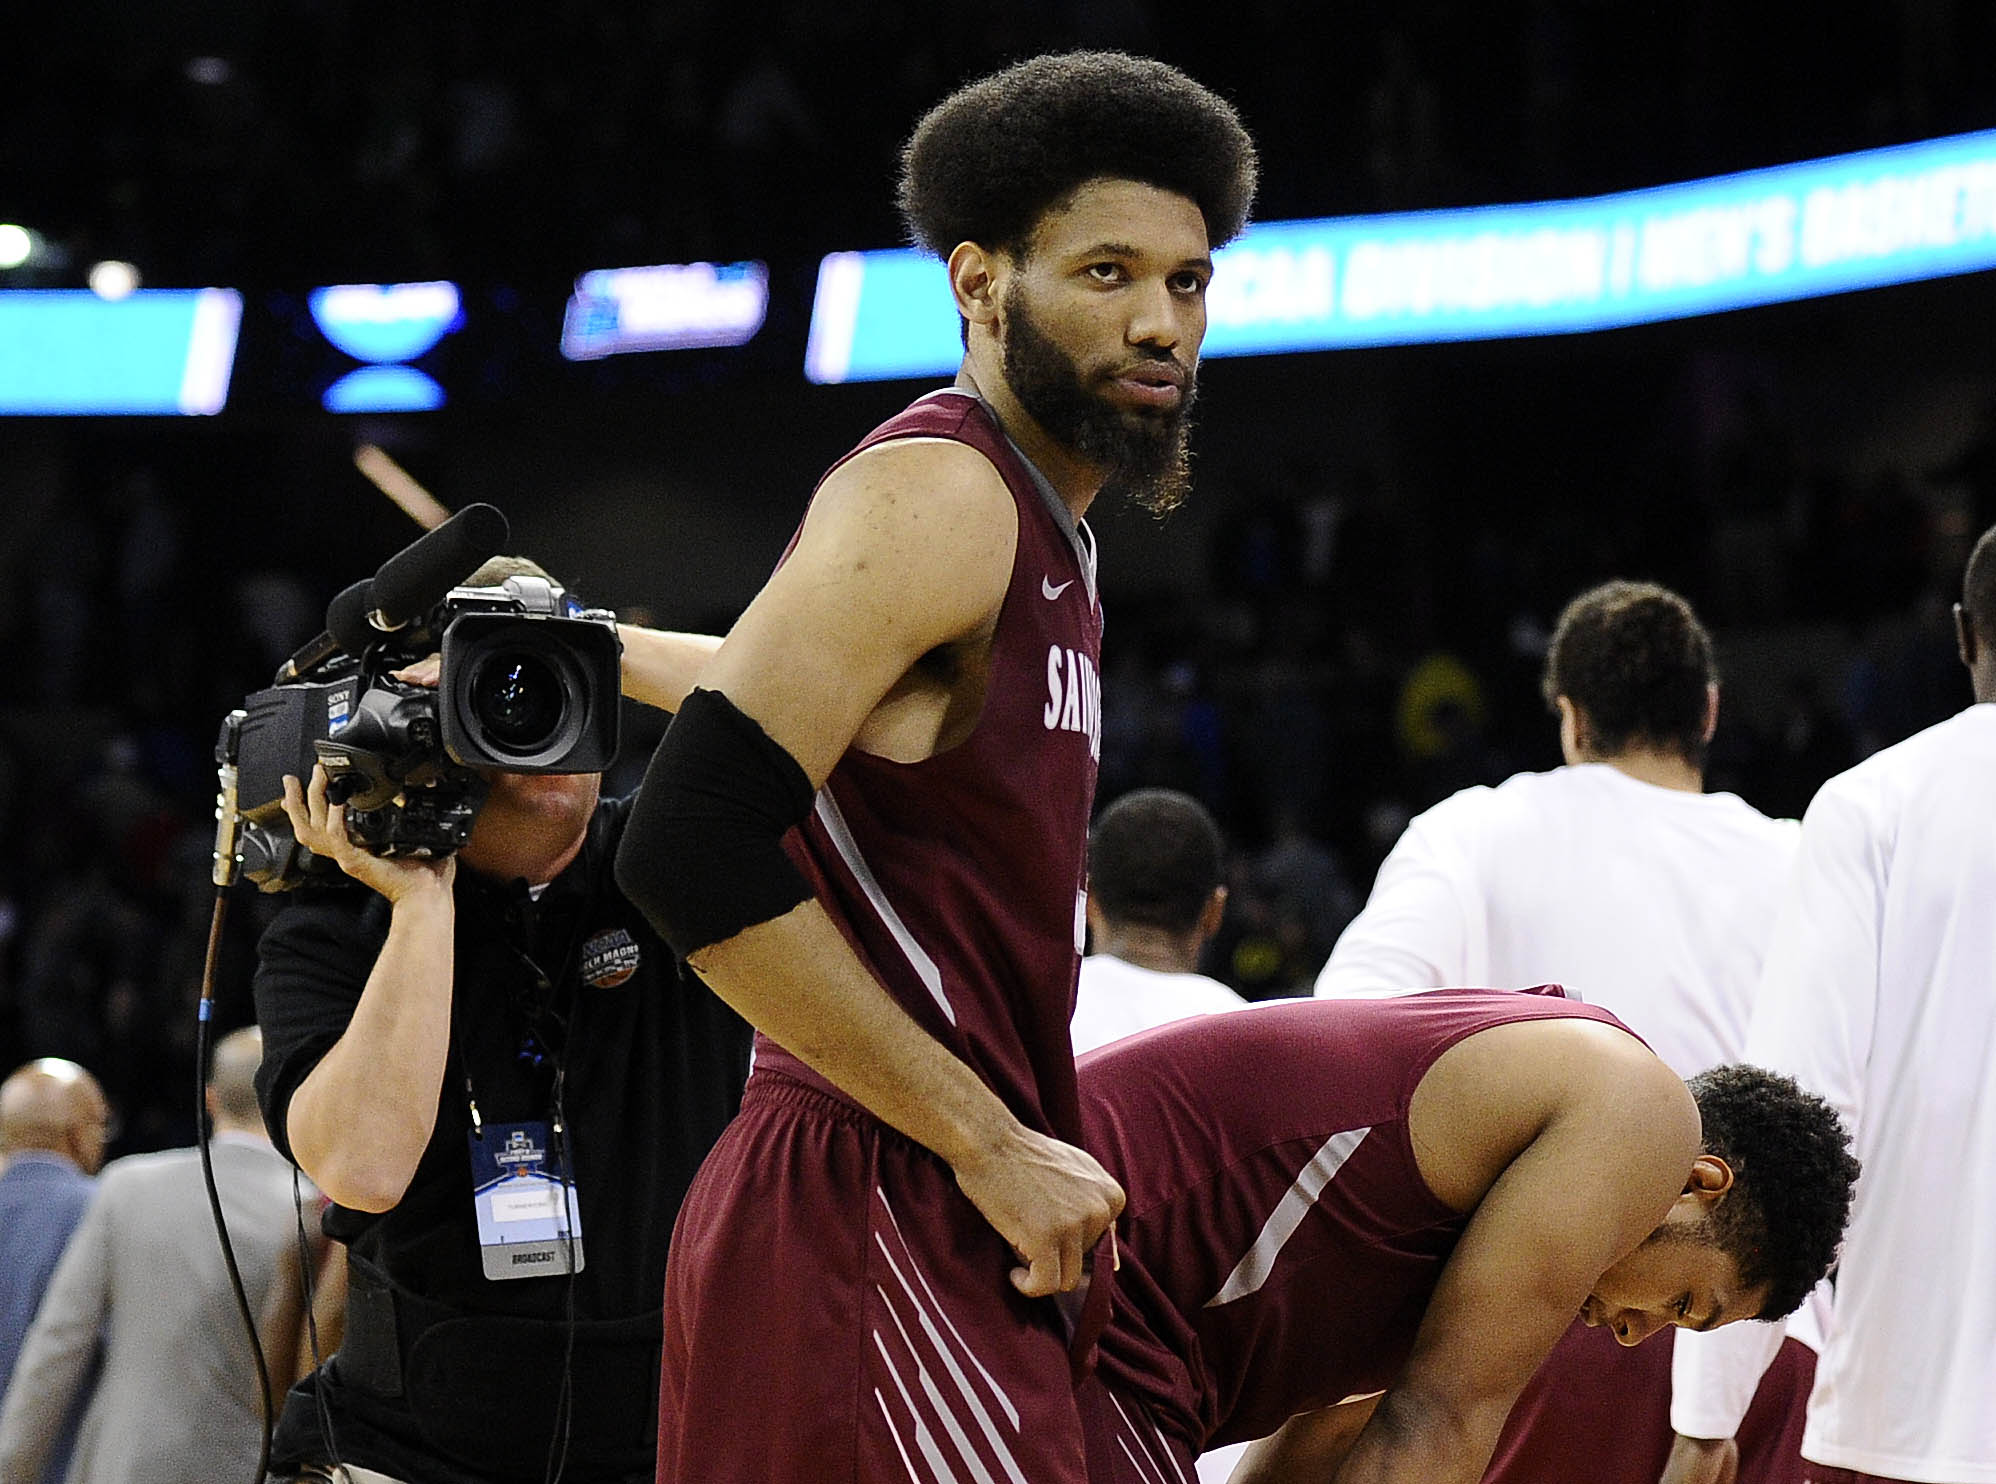 Could DeAndre Bembry end up as the Suns pick?